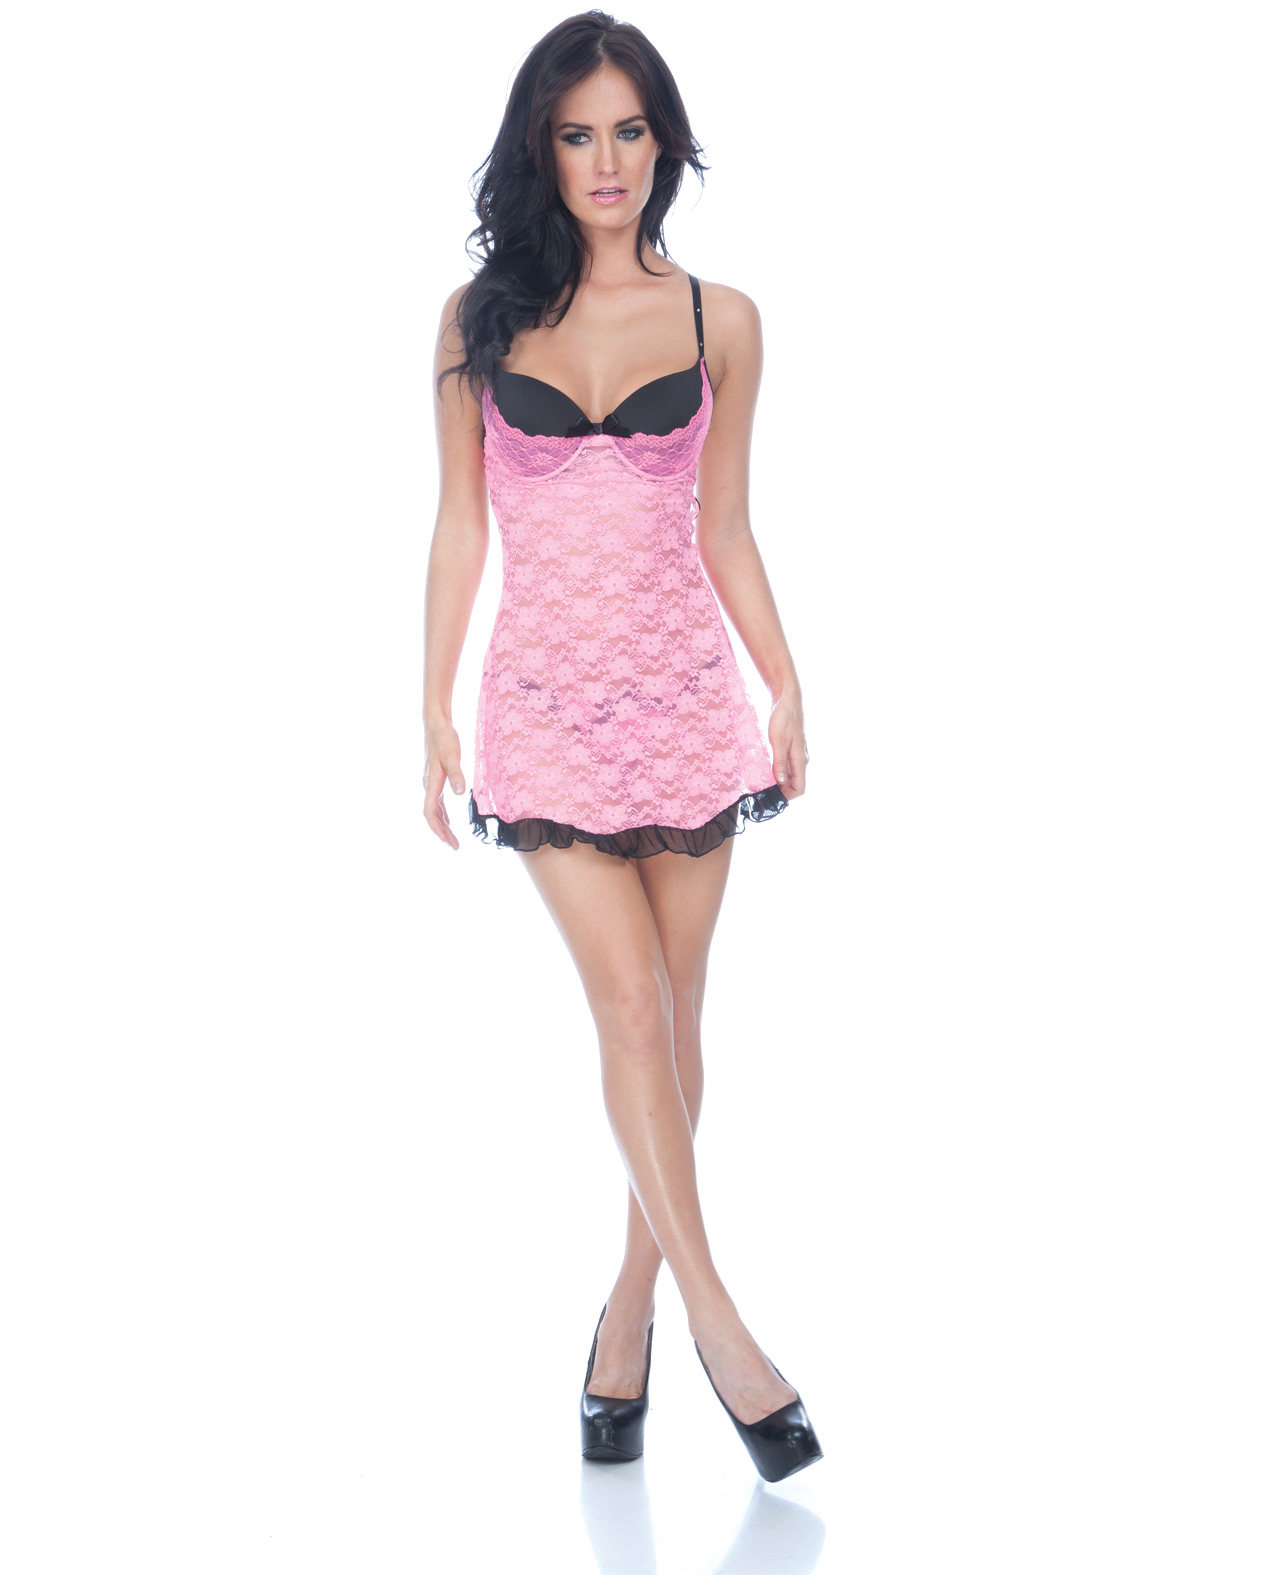 Women's Floral Lace Babydoll and Panty Black/Pink - L ED-PP5744-BP-X0